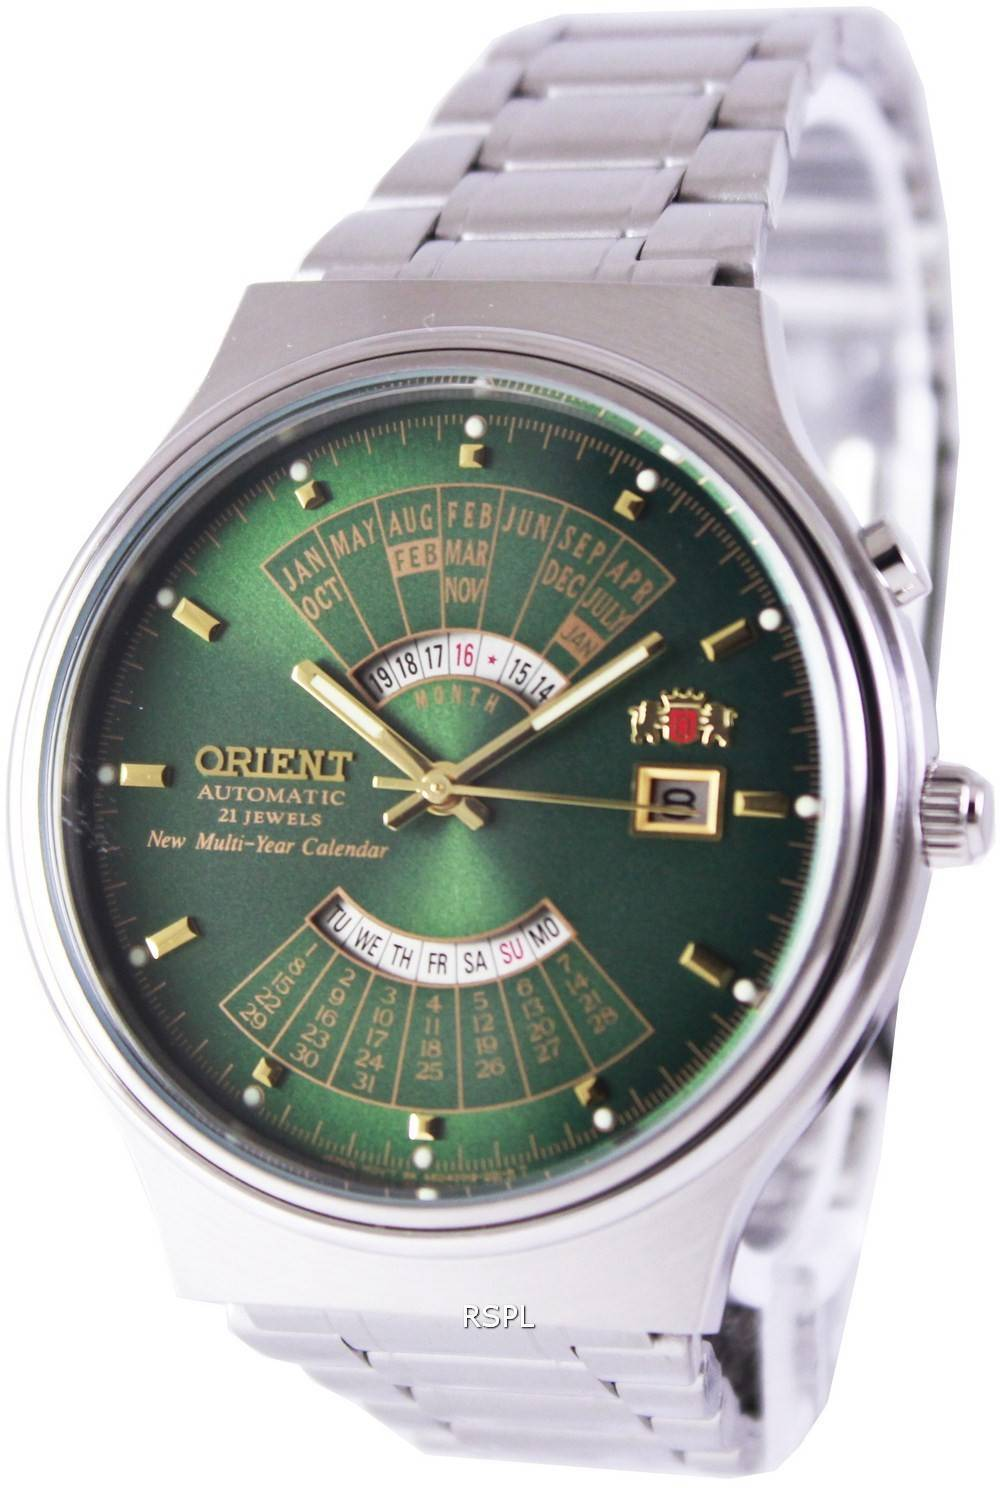 Orient watches - all prices for Orient watches